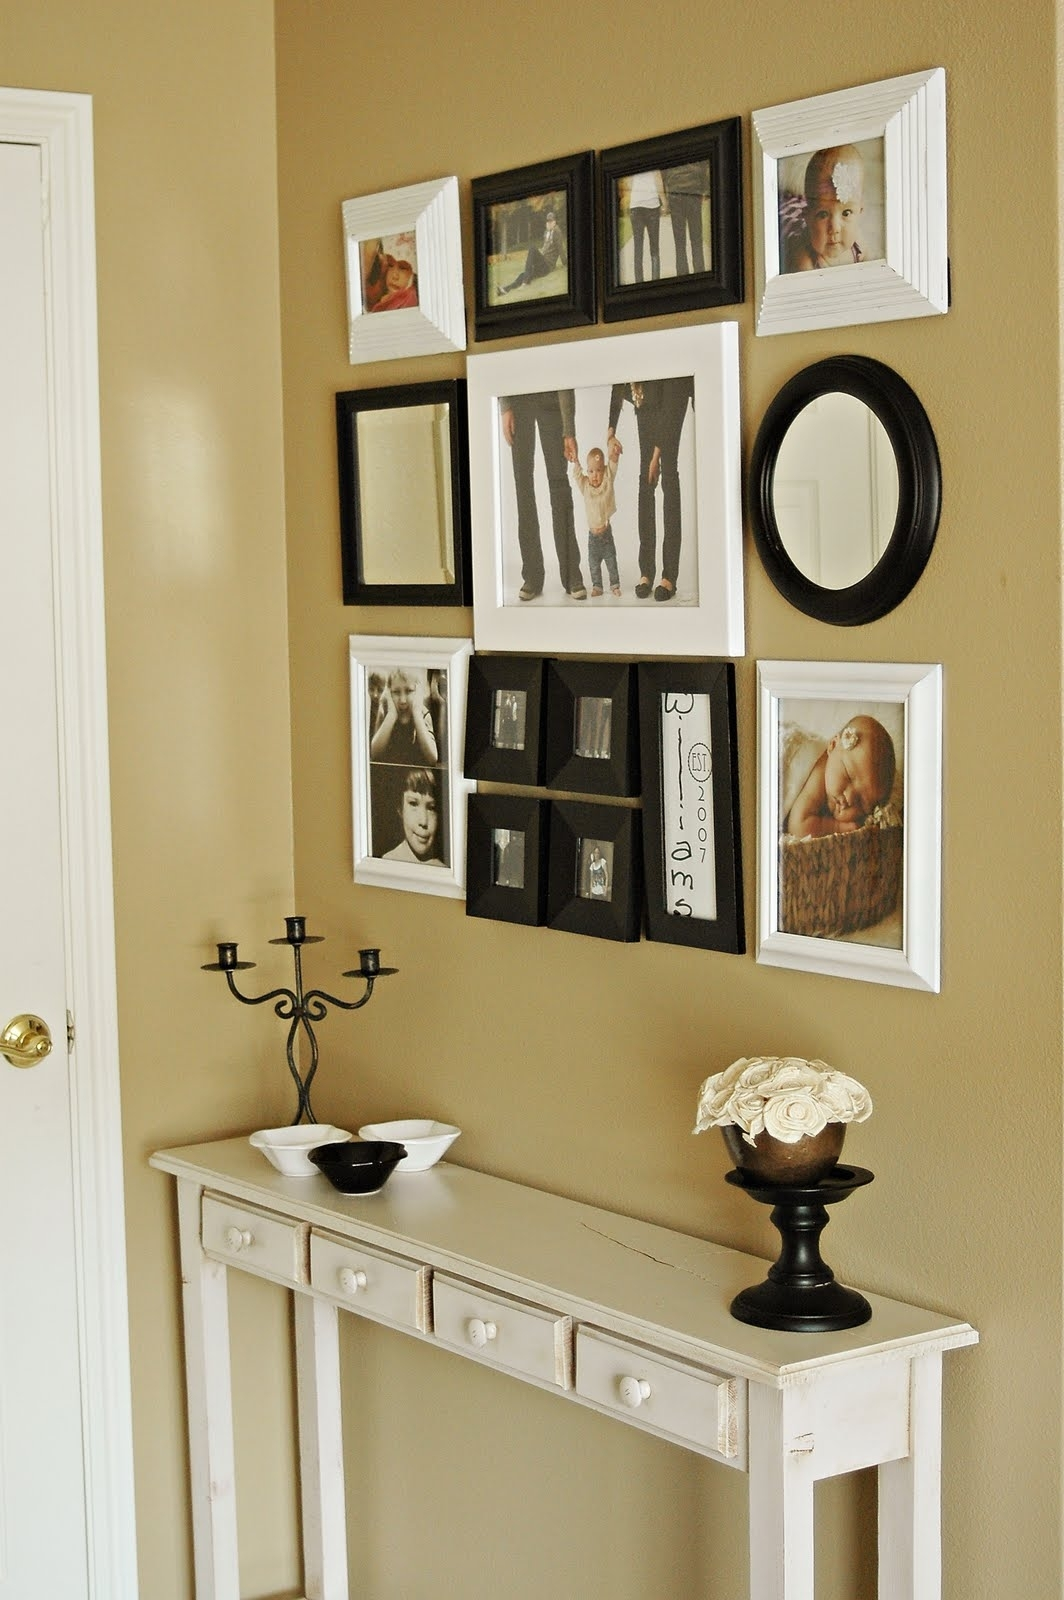 Interior | Photo Gallery Idea Entryway Wall Decor – Entryway With Regard To Recent Entrance Wall Accents (Gallery 6 of 15)